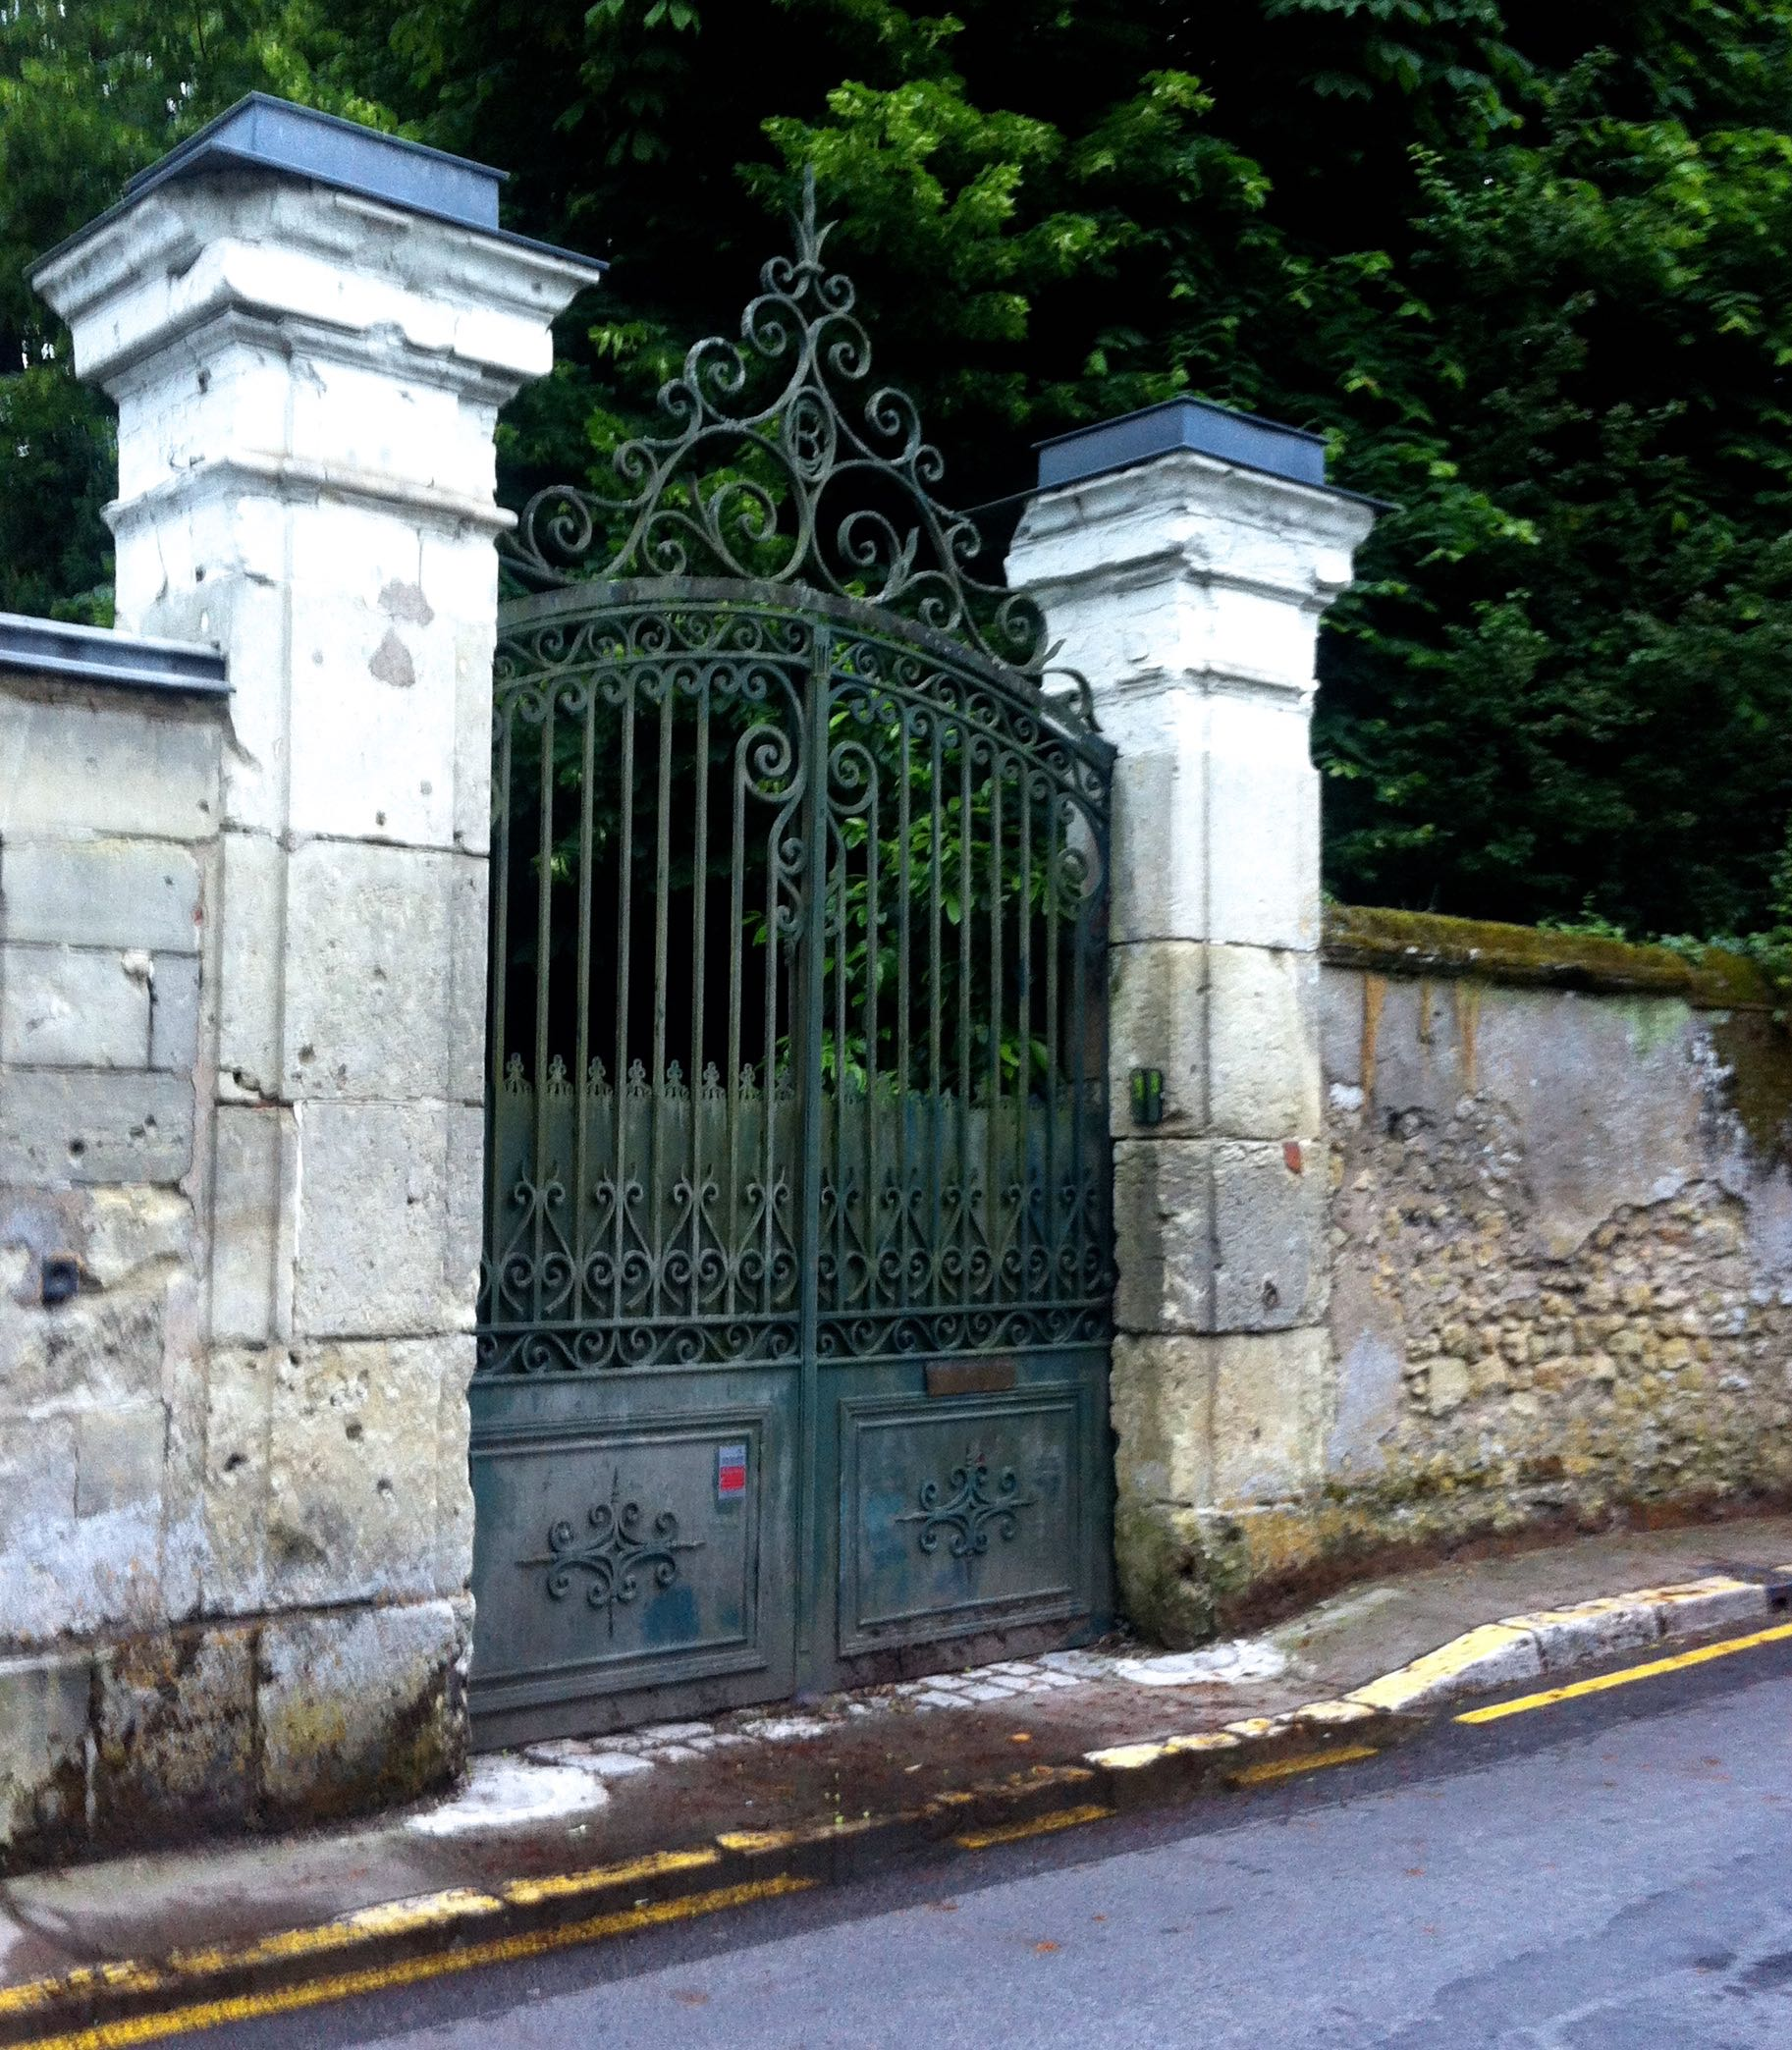 Wrought iron gates full of character